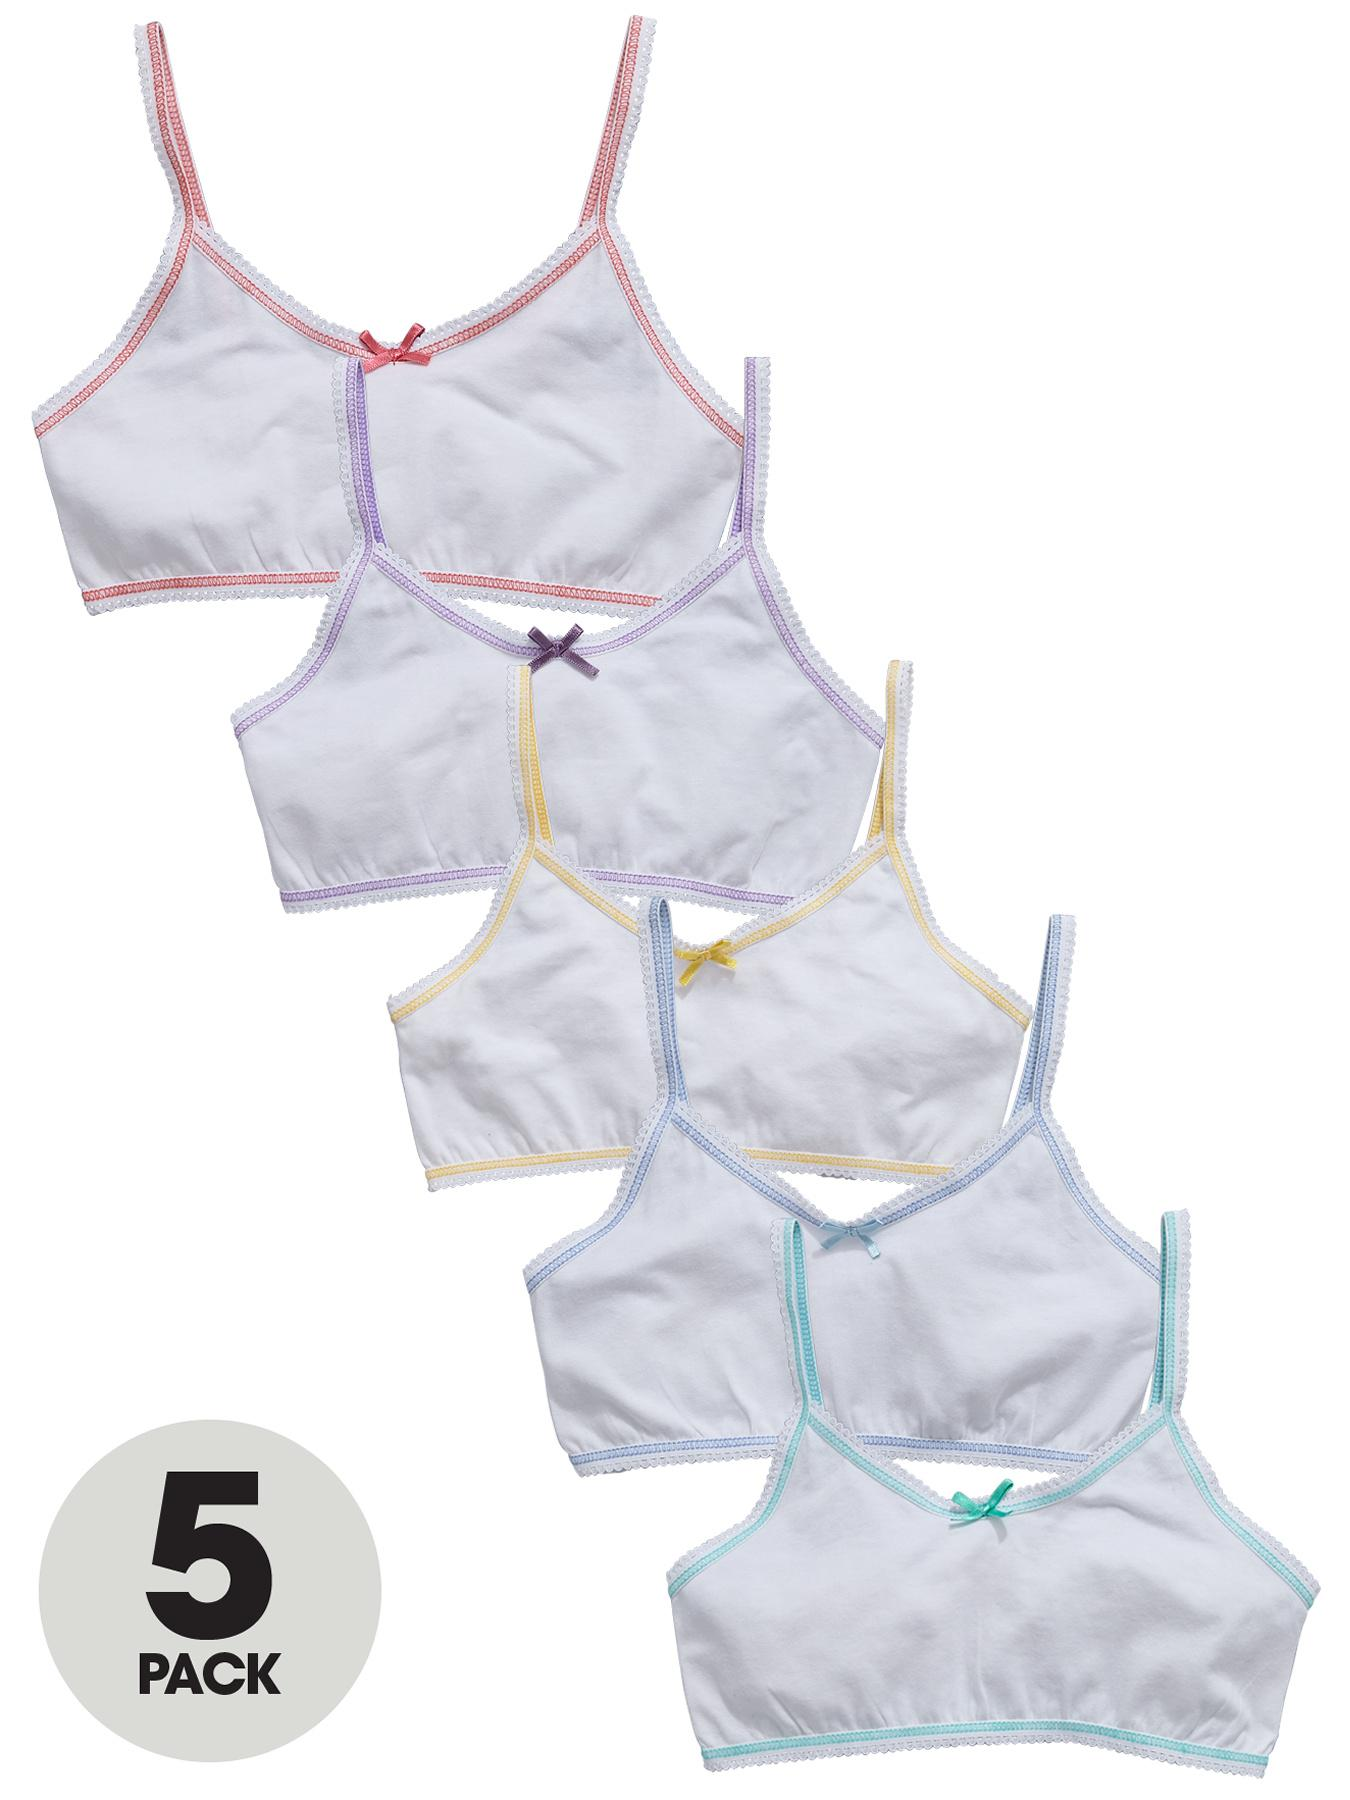 Contrast Bow Crop Tops (5 pack), White at Littlewoods